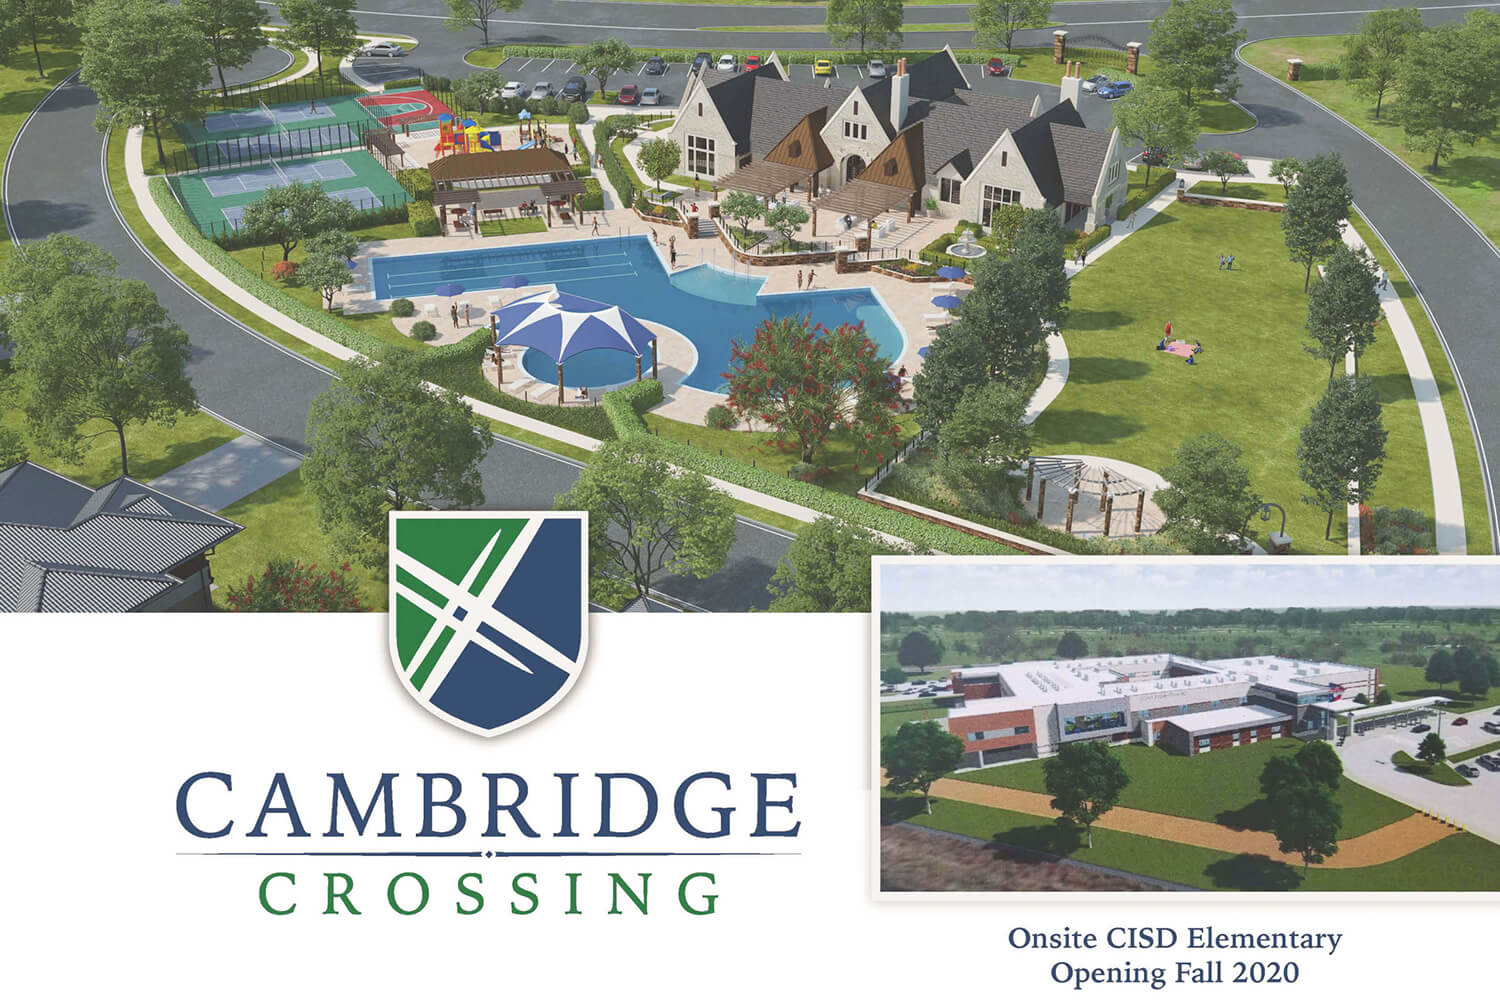 CambridgeCrossing-for-new-site-scaled